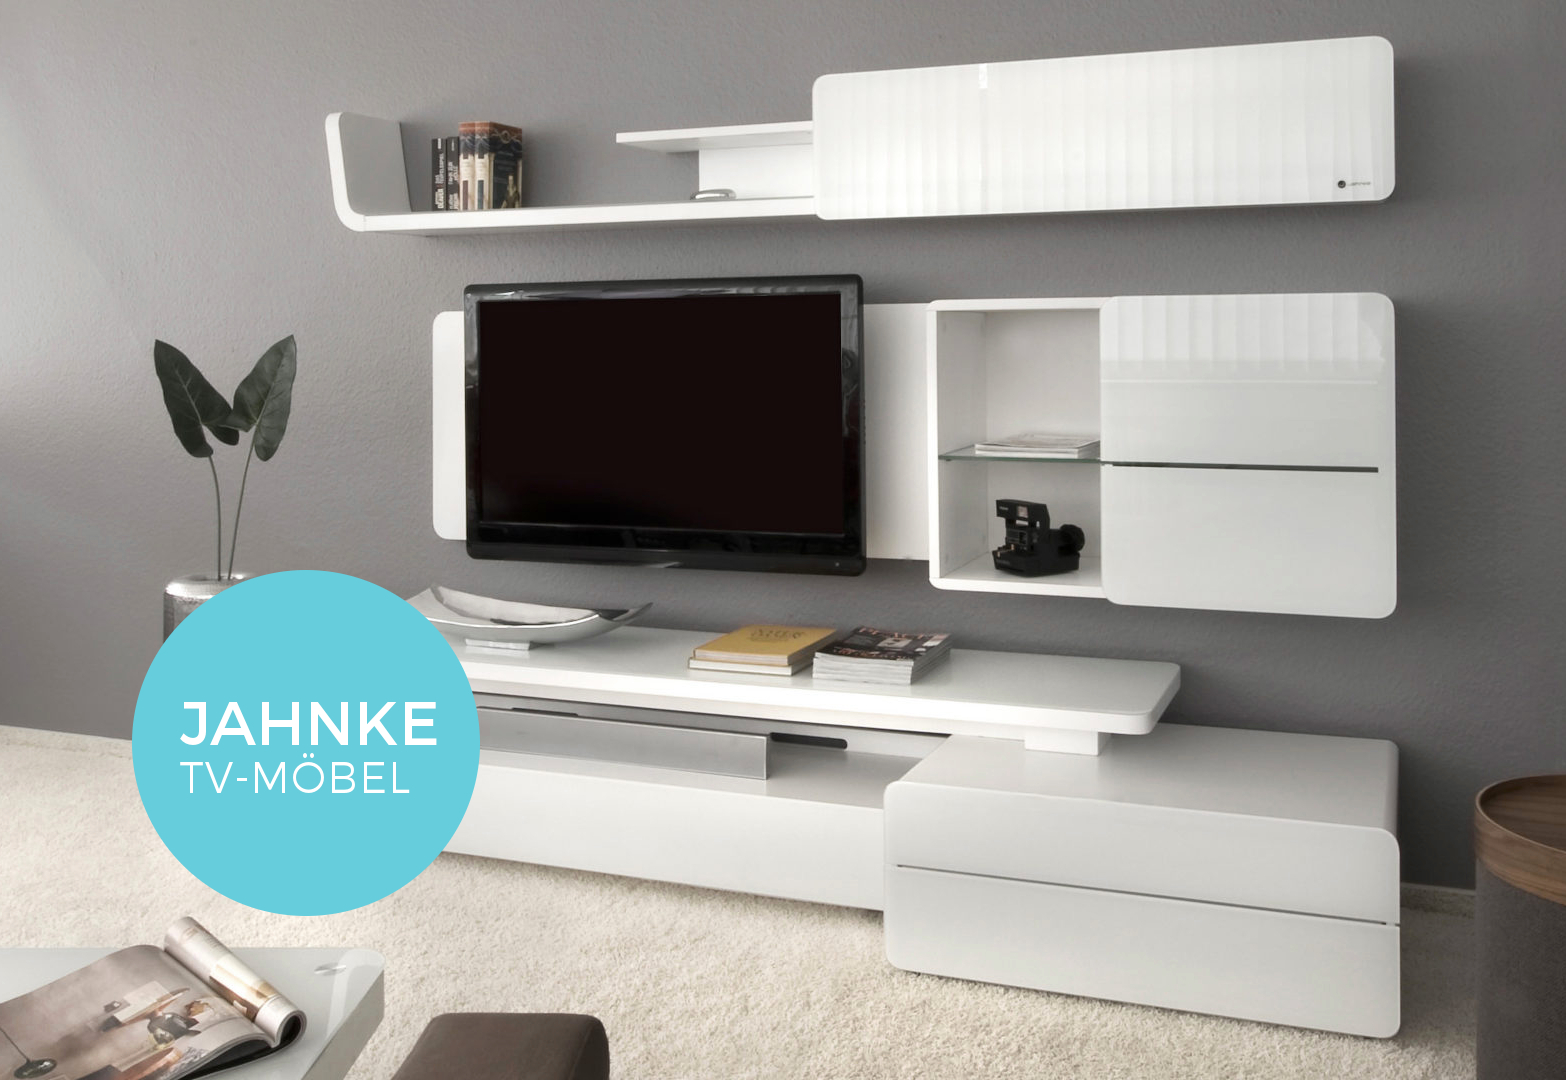 jahnke tv m bel my blog. Black Bedroom Furniture Sets. Home Design Ideas